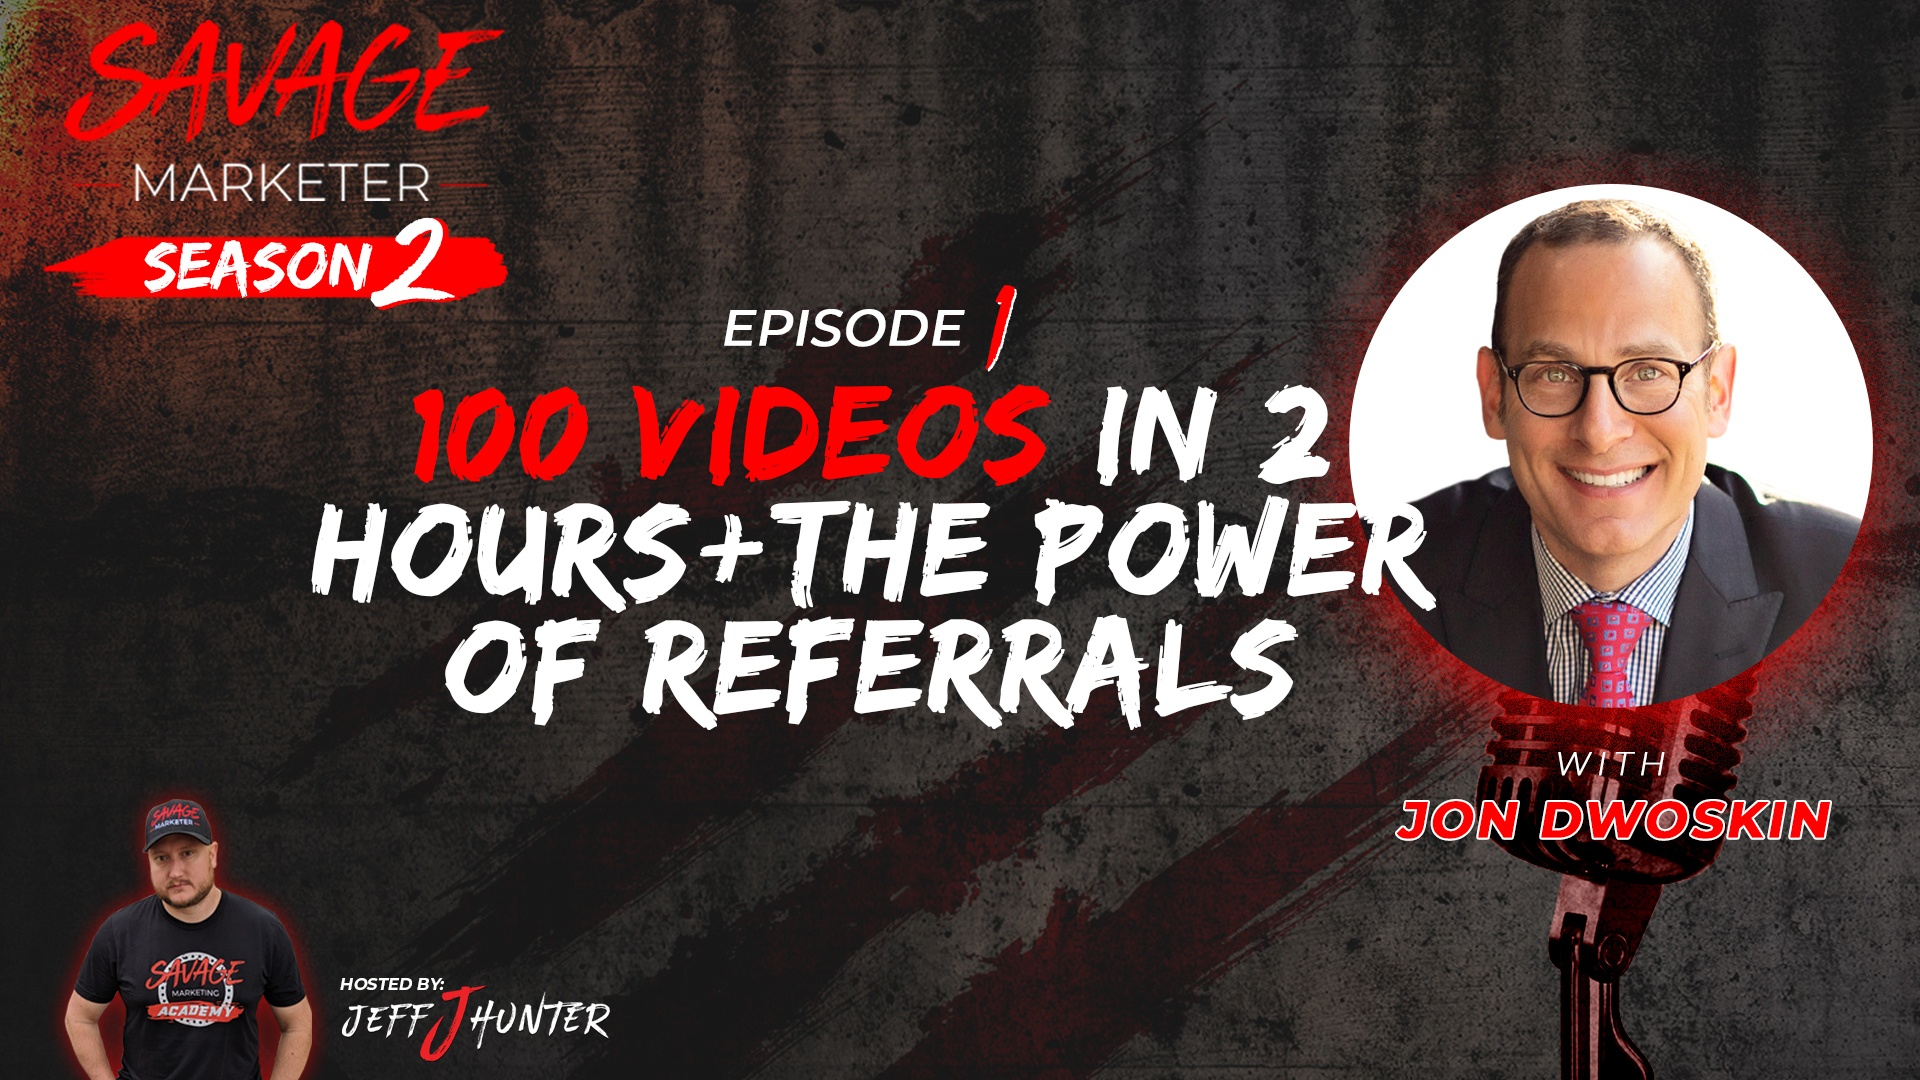 100 Videos in 2 Hours + The Power of Referrals with Jon Dwoskin